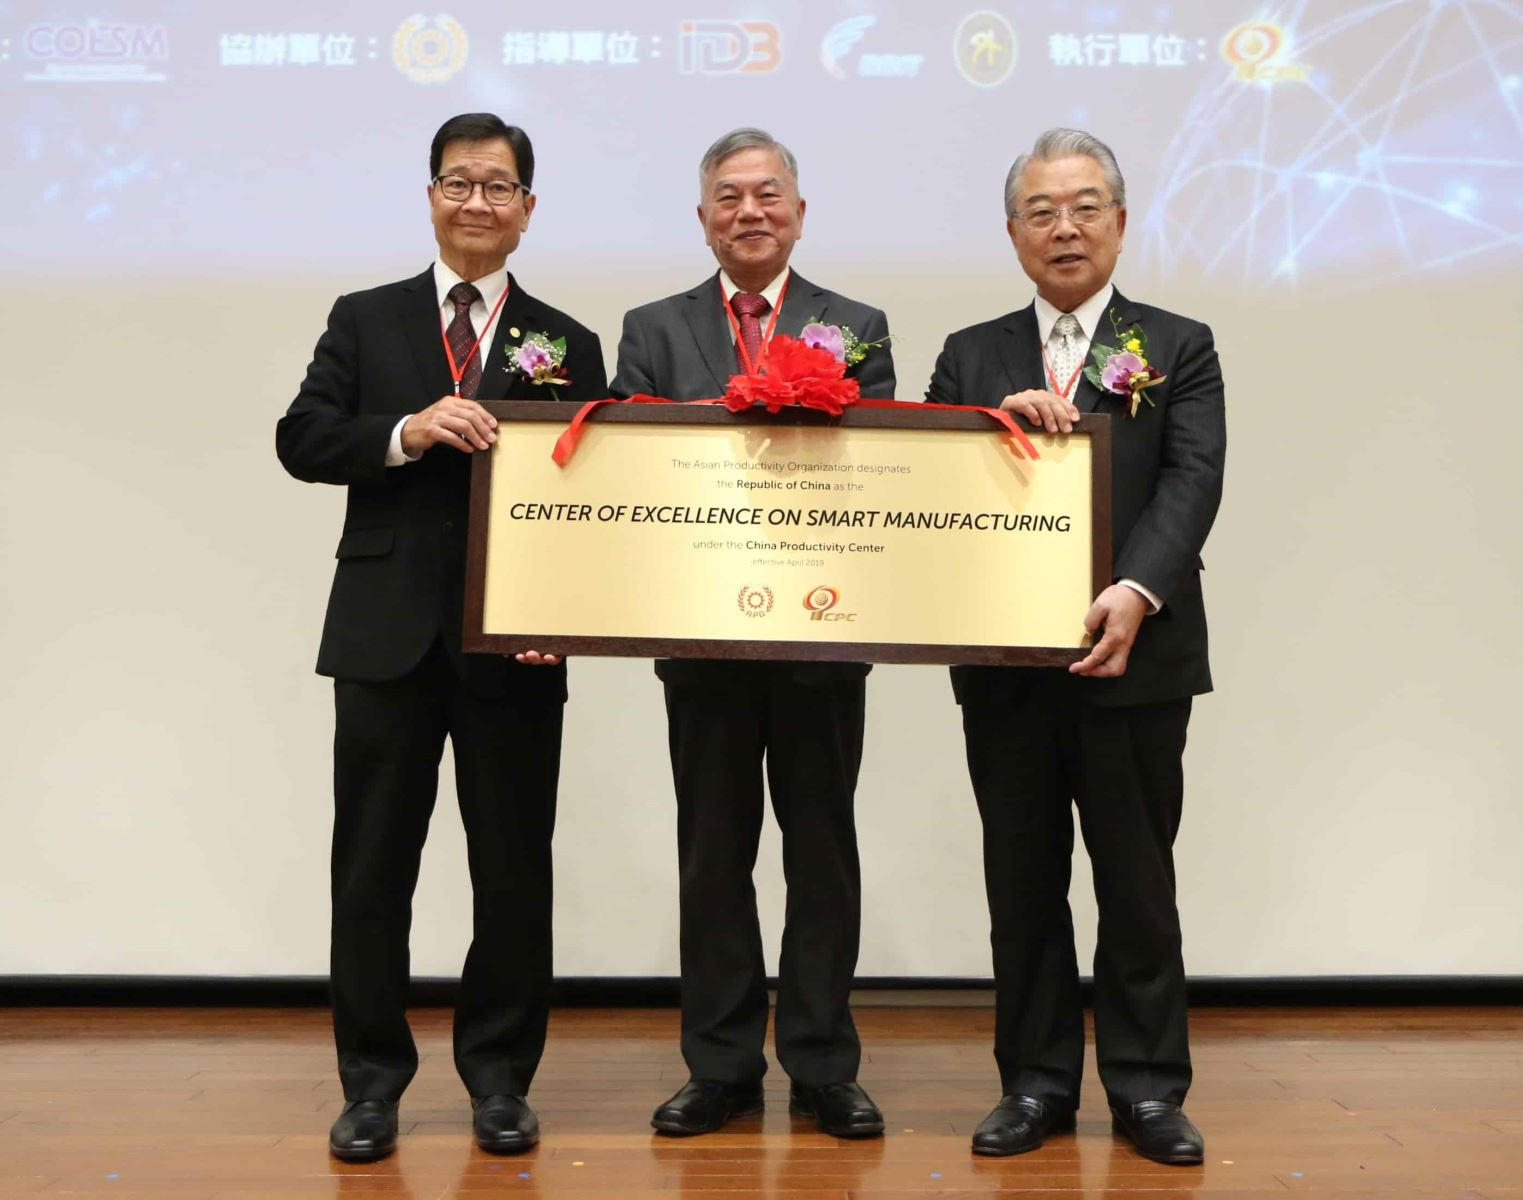 Dr. Santhi Kanoktanaporn, APO Secretary-General (left) presenting the plaque of COE on Smart Manufacturing to CPC Chairperson Sheng-Hsiung Hsu (right), witnessed by Mr. Shen Jong-Chin, Minister of Economic Affairs (center)